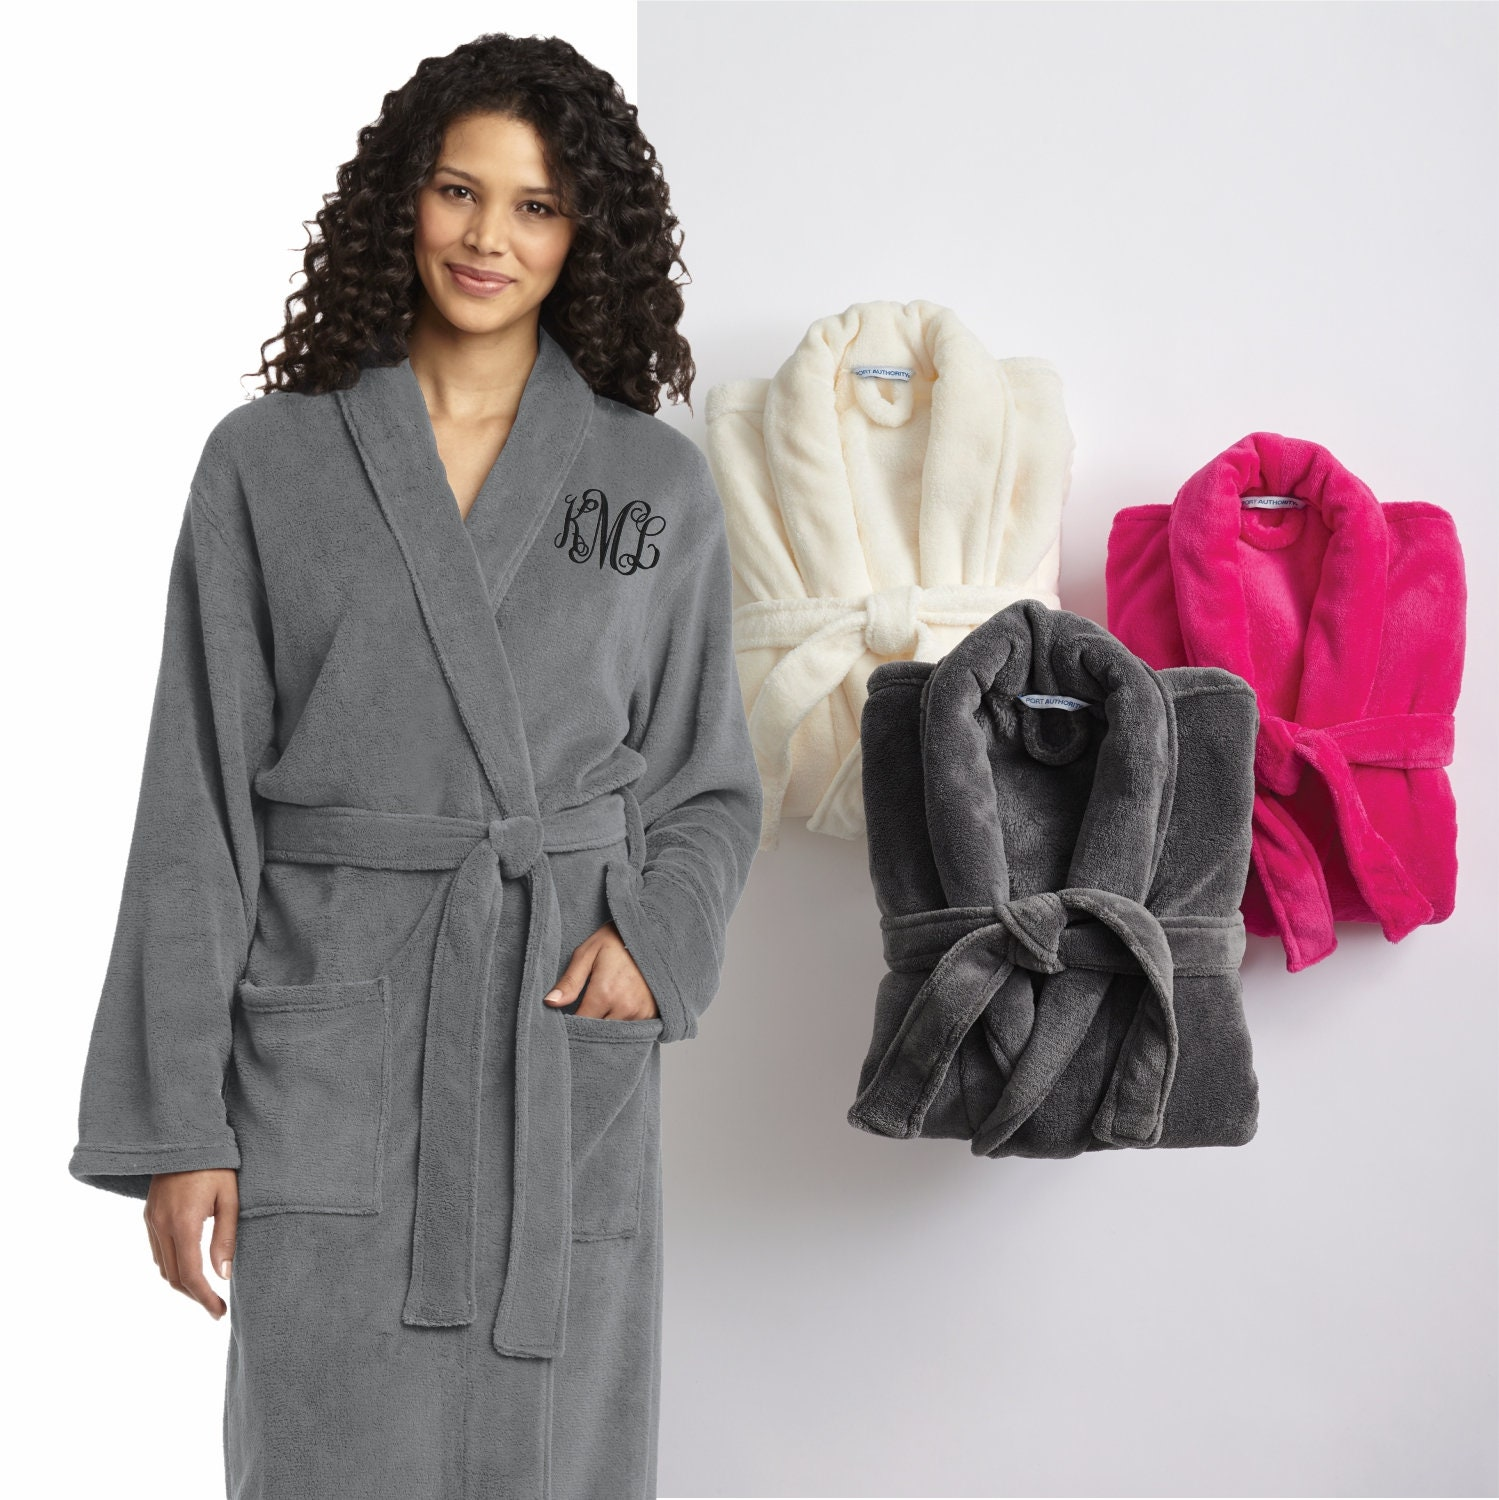 7025bd76c4 SET of 2 Personalized Plush Spa Robes Custom Monogrammed